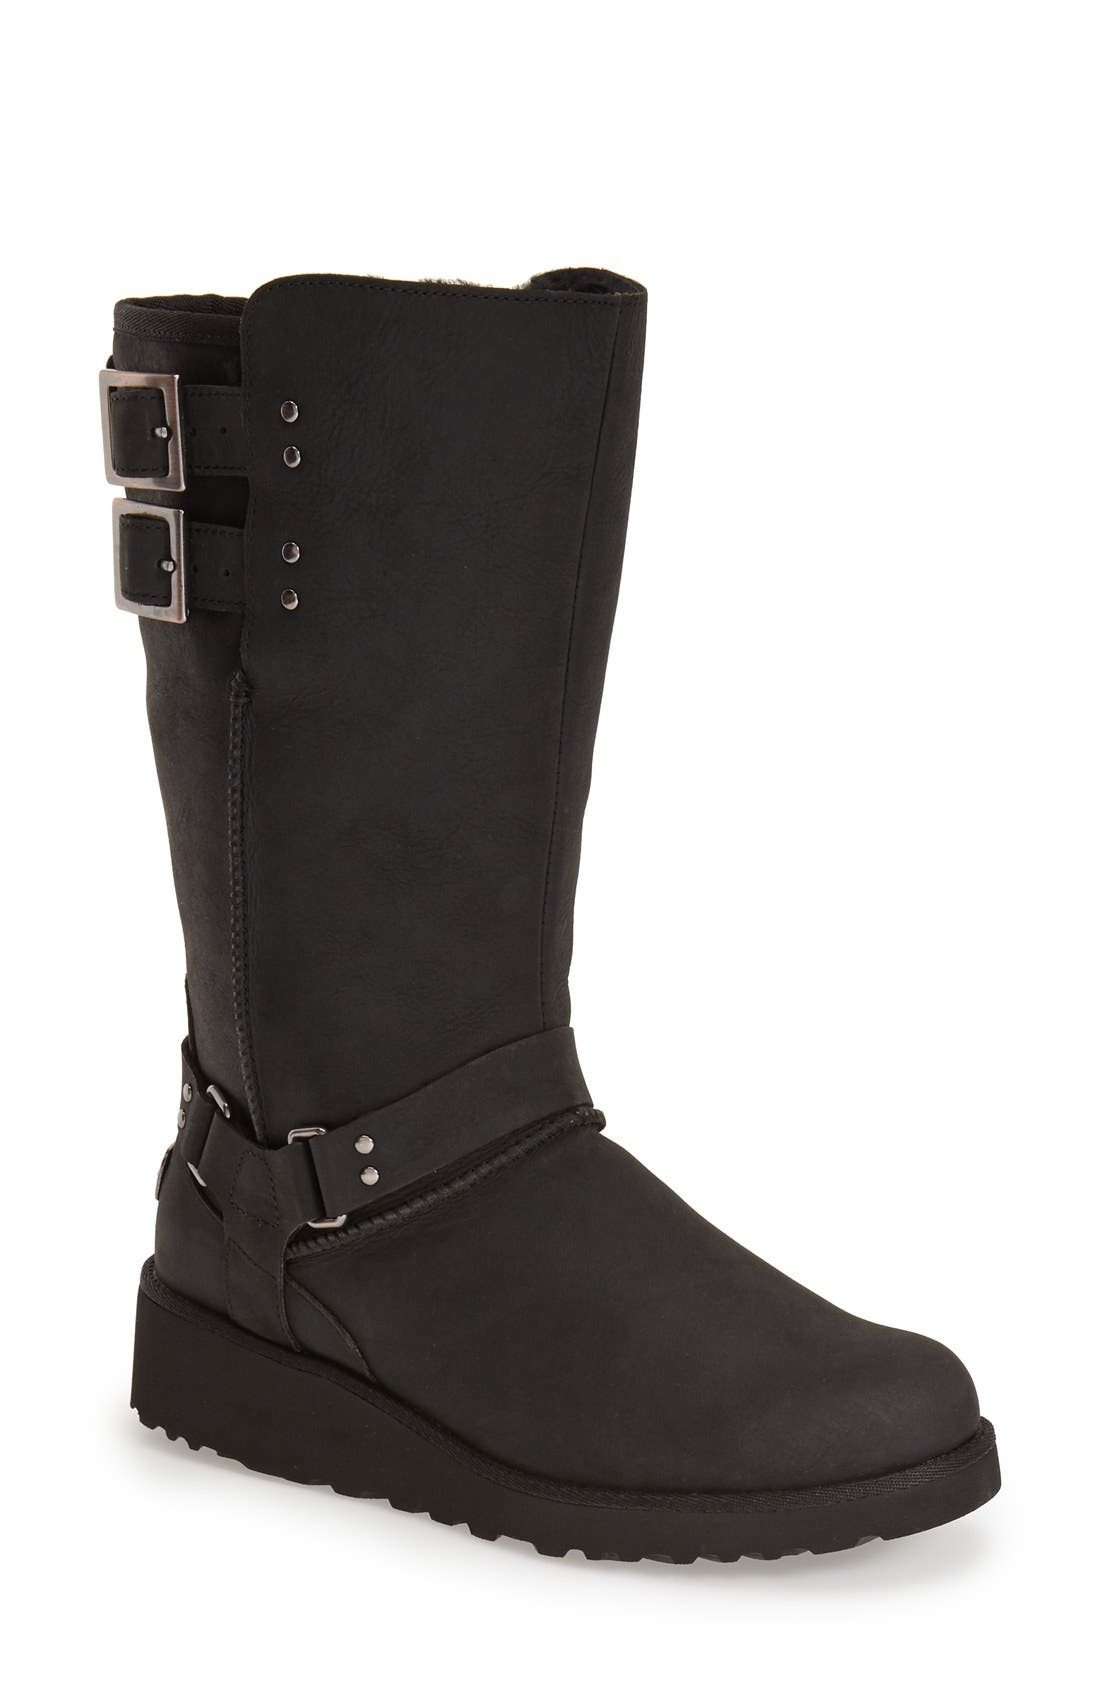 'Jasper' Water Resistant Boot,                         Main,                         color, Black Leather